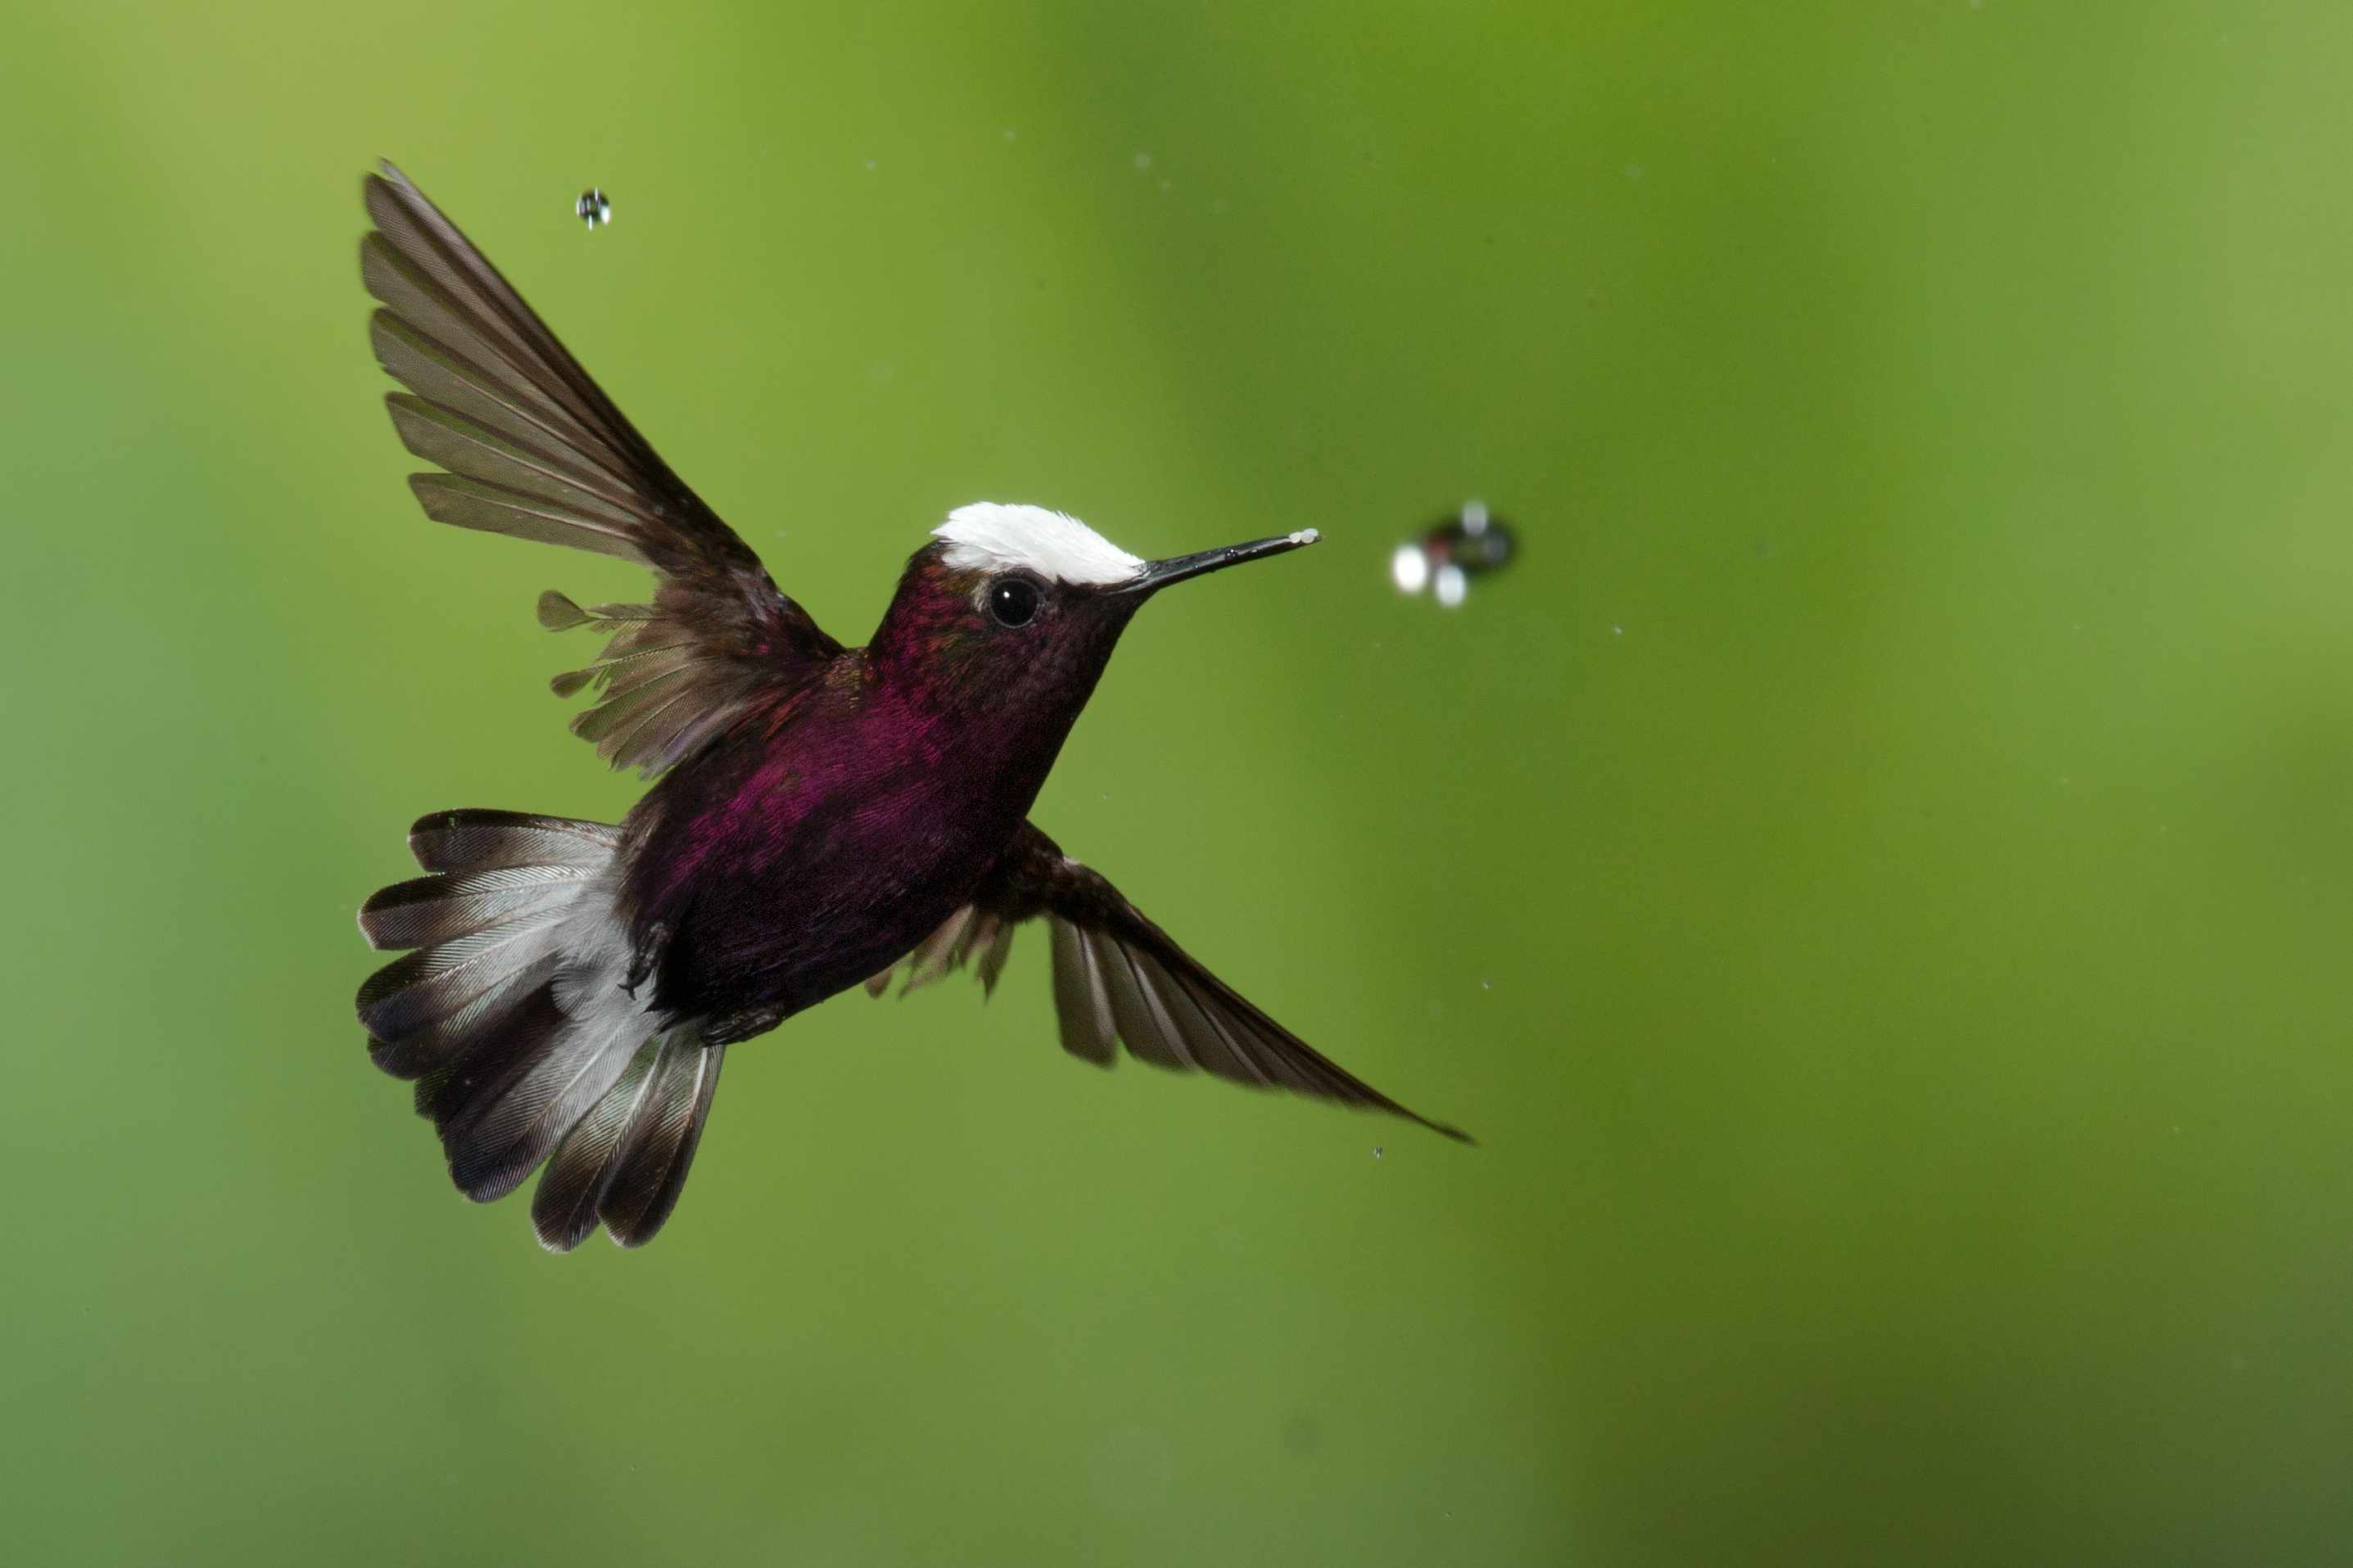 White-crowned hummingbird in flight caching a water drop